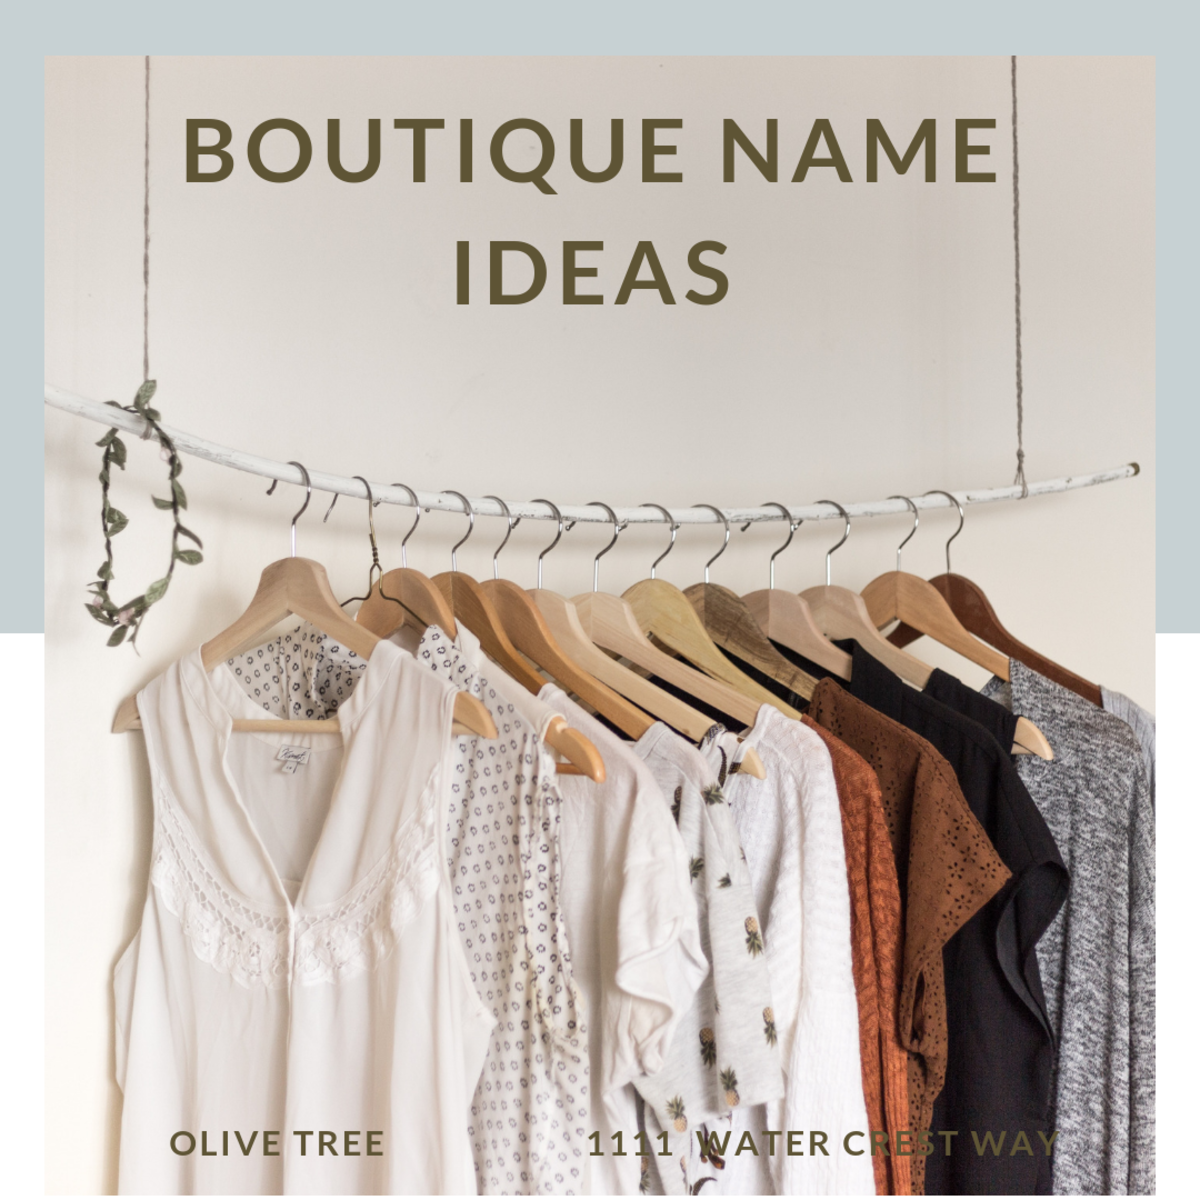 Use these tips and name ideas to create the perfect, brand or boutique name for your new business.